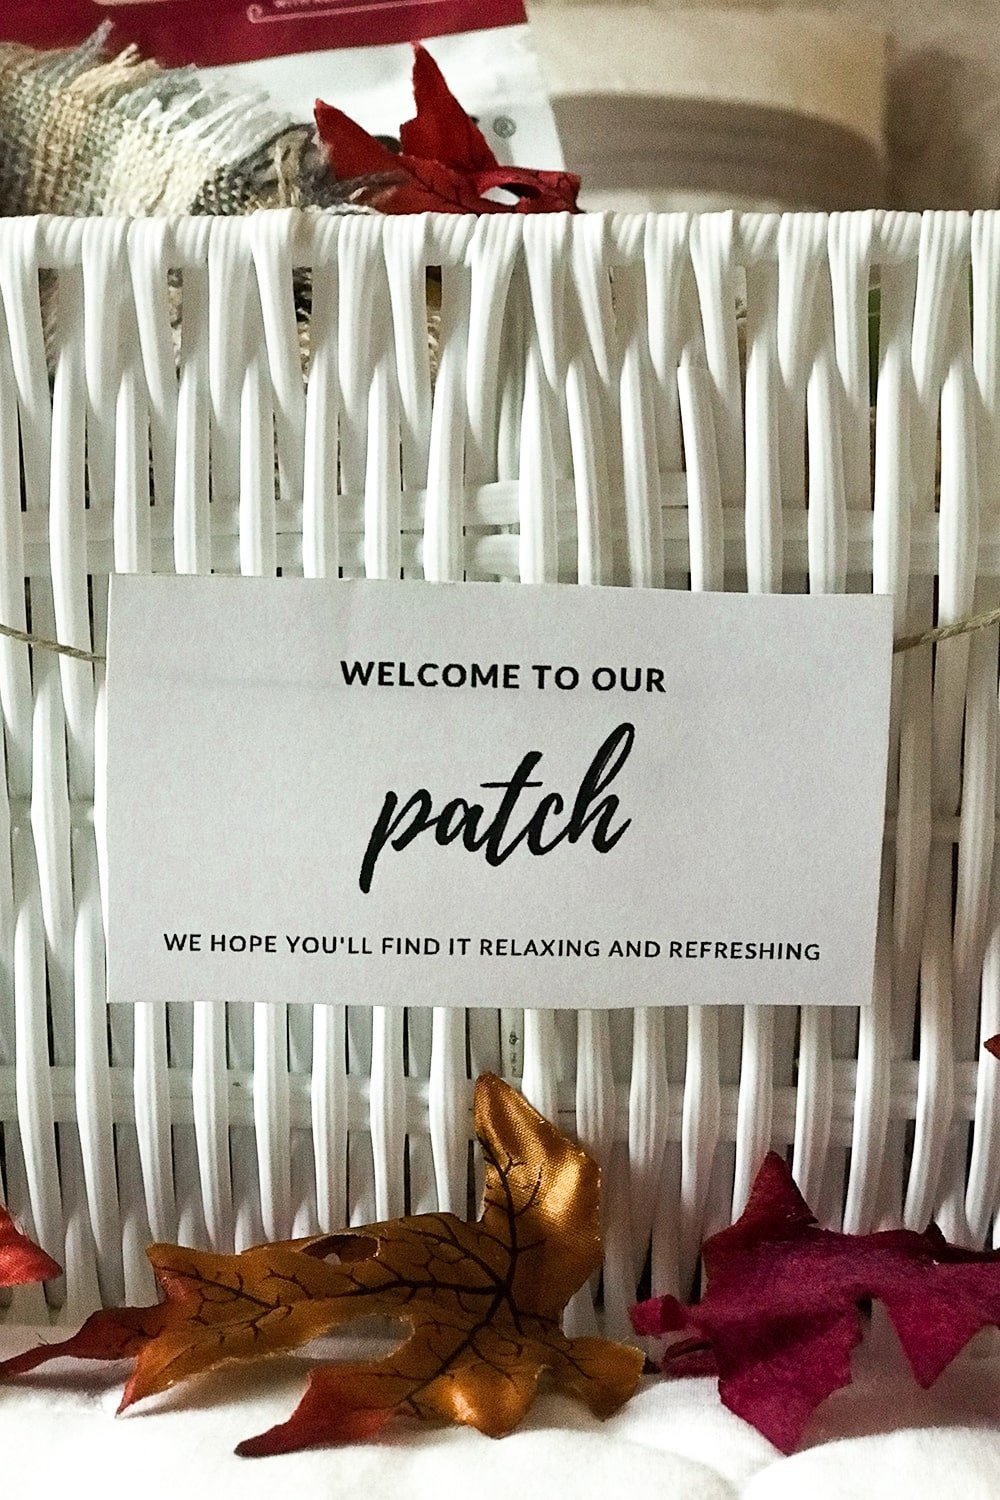 Welcome To Our Patch Tag. We hope you'll find it relaxing and refreshing.